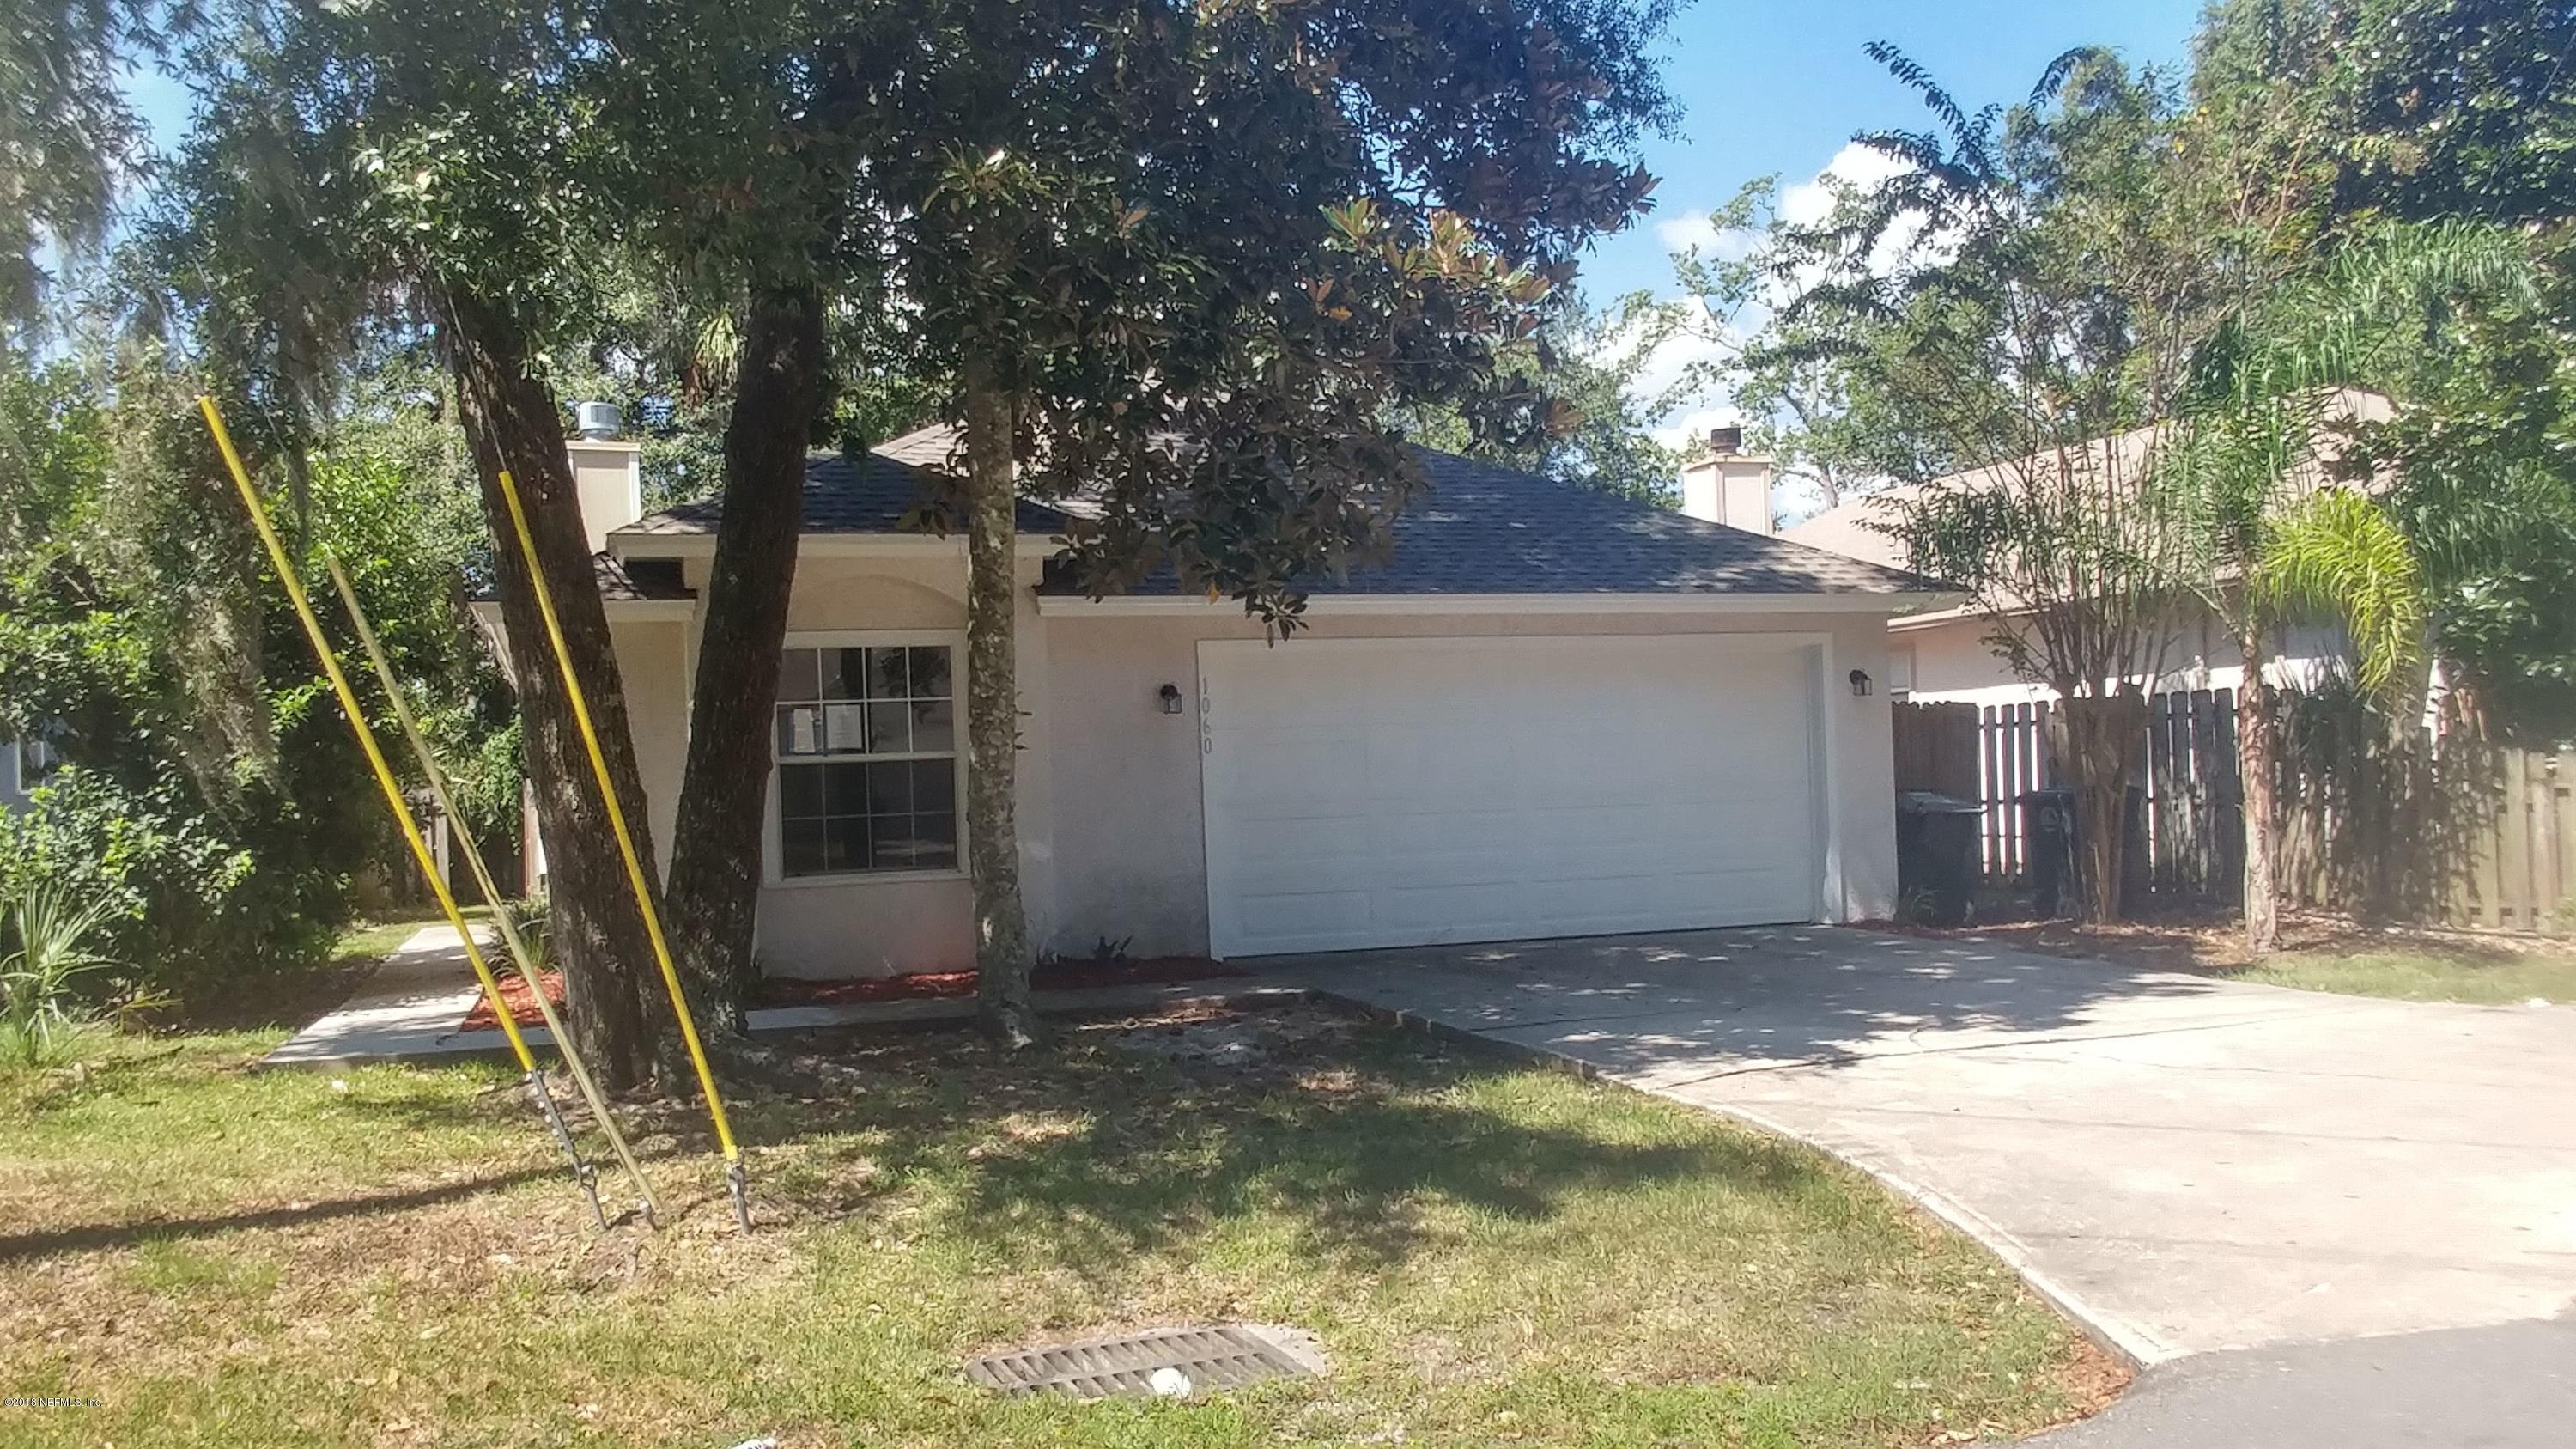 1060 CAMELIA, ATLANTIC BEACH, FLORIDA 32233, 4 Bedrooms Bedrooms, ,2 BathroomsBathrooms,Residential - single family,For sale,CAMELIA,959529